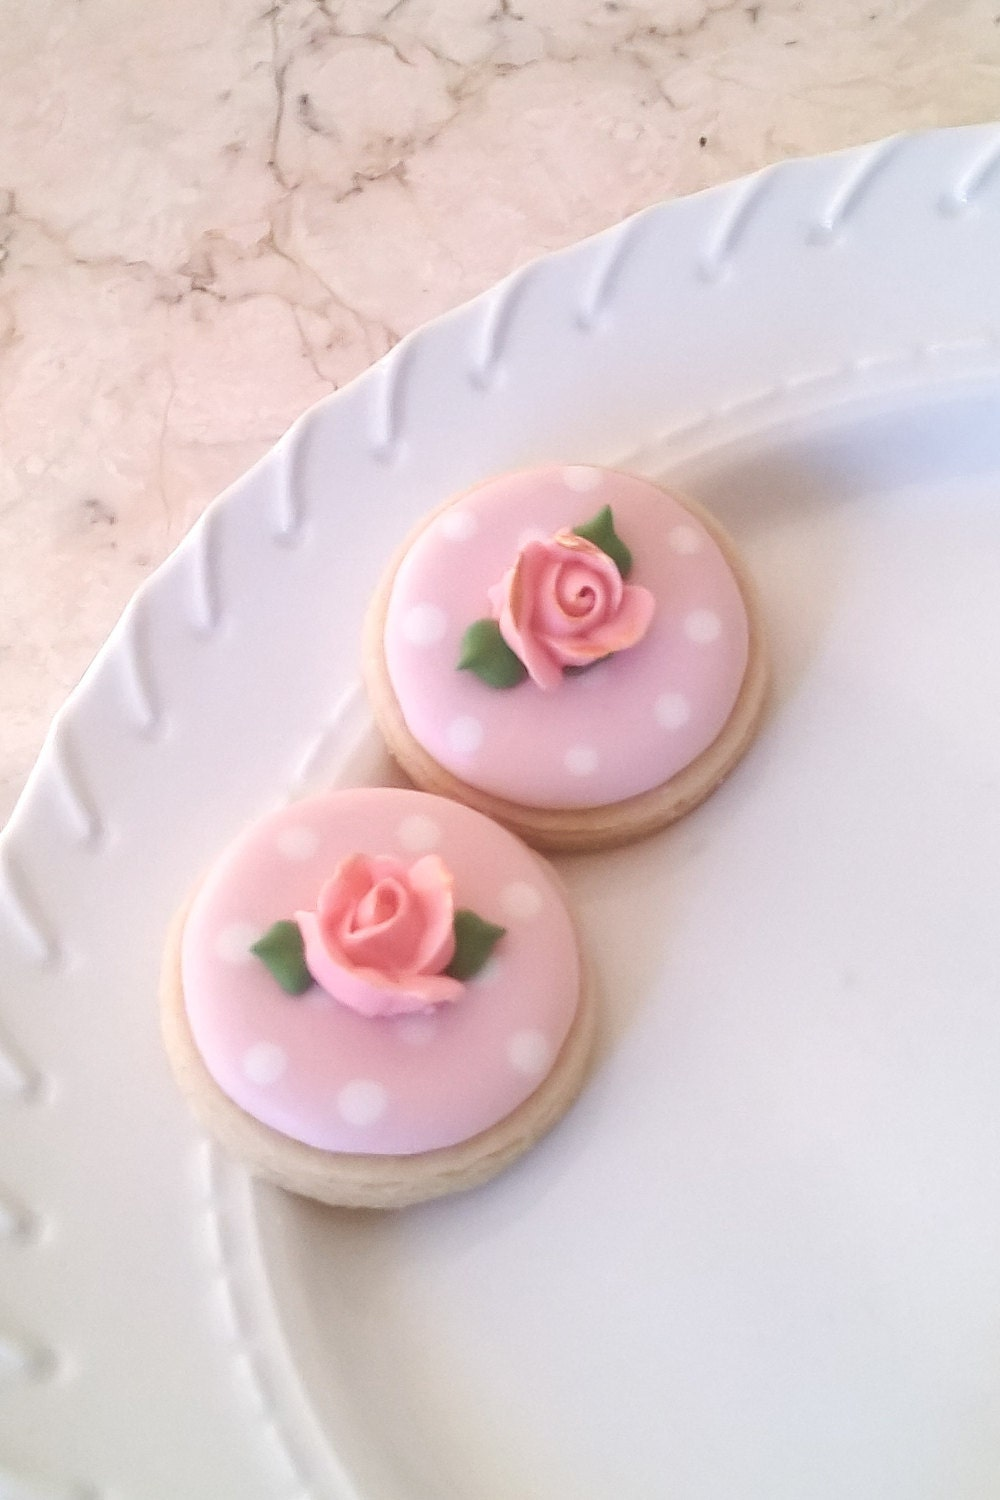 50 Pcs. Round or Heart Cookie Favor-White Wedding Favors, Bridal ...